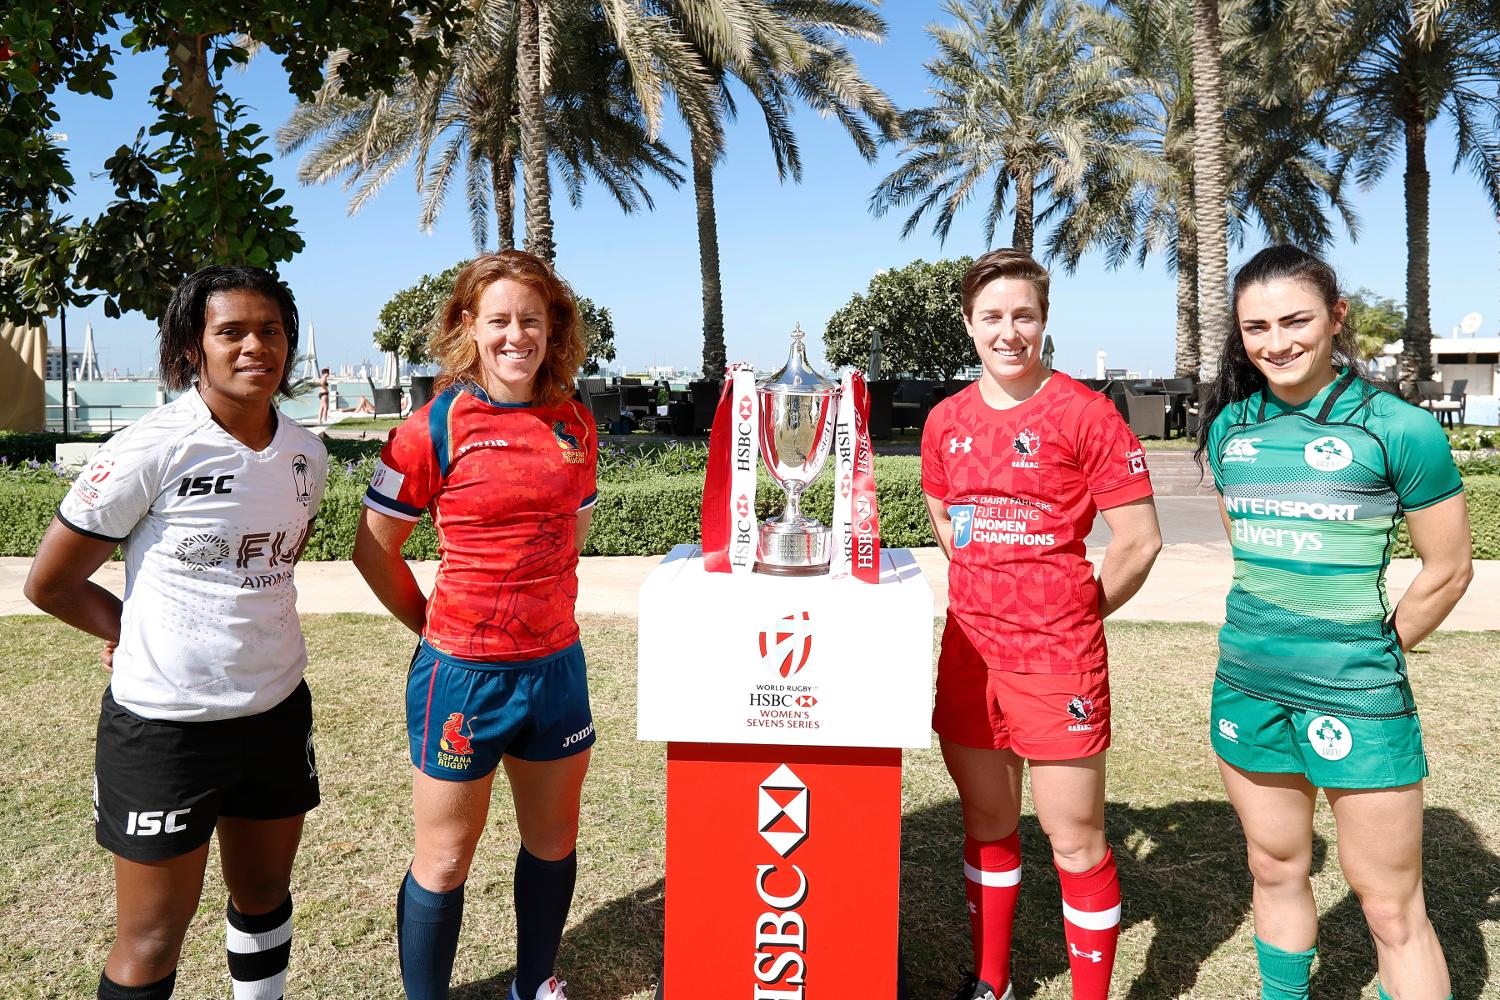 Emirates Airline Dubai Rugby Sevens Captain's Photo- Women's Pool C